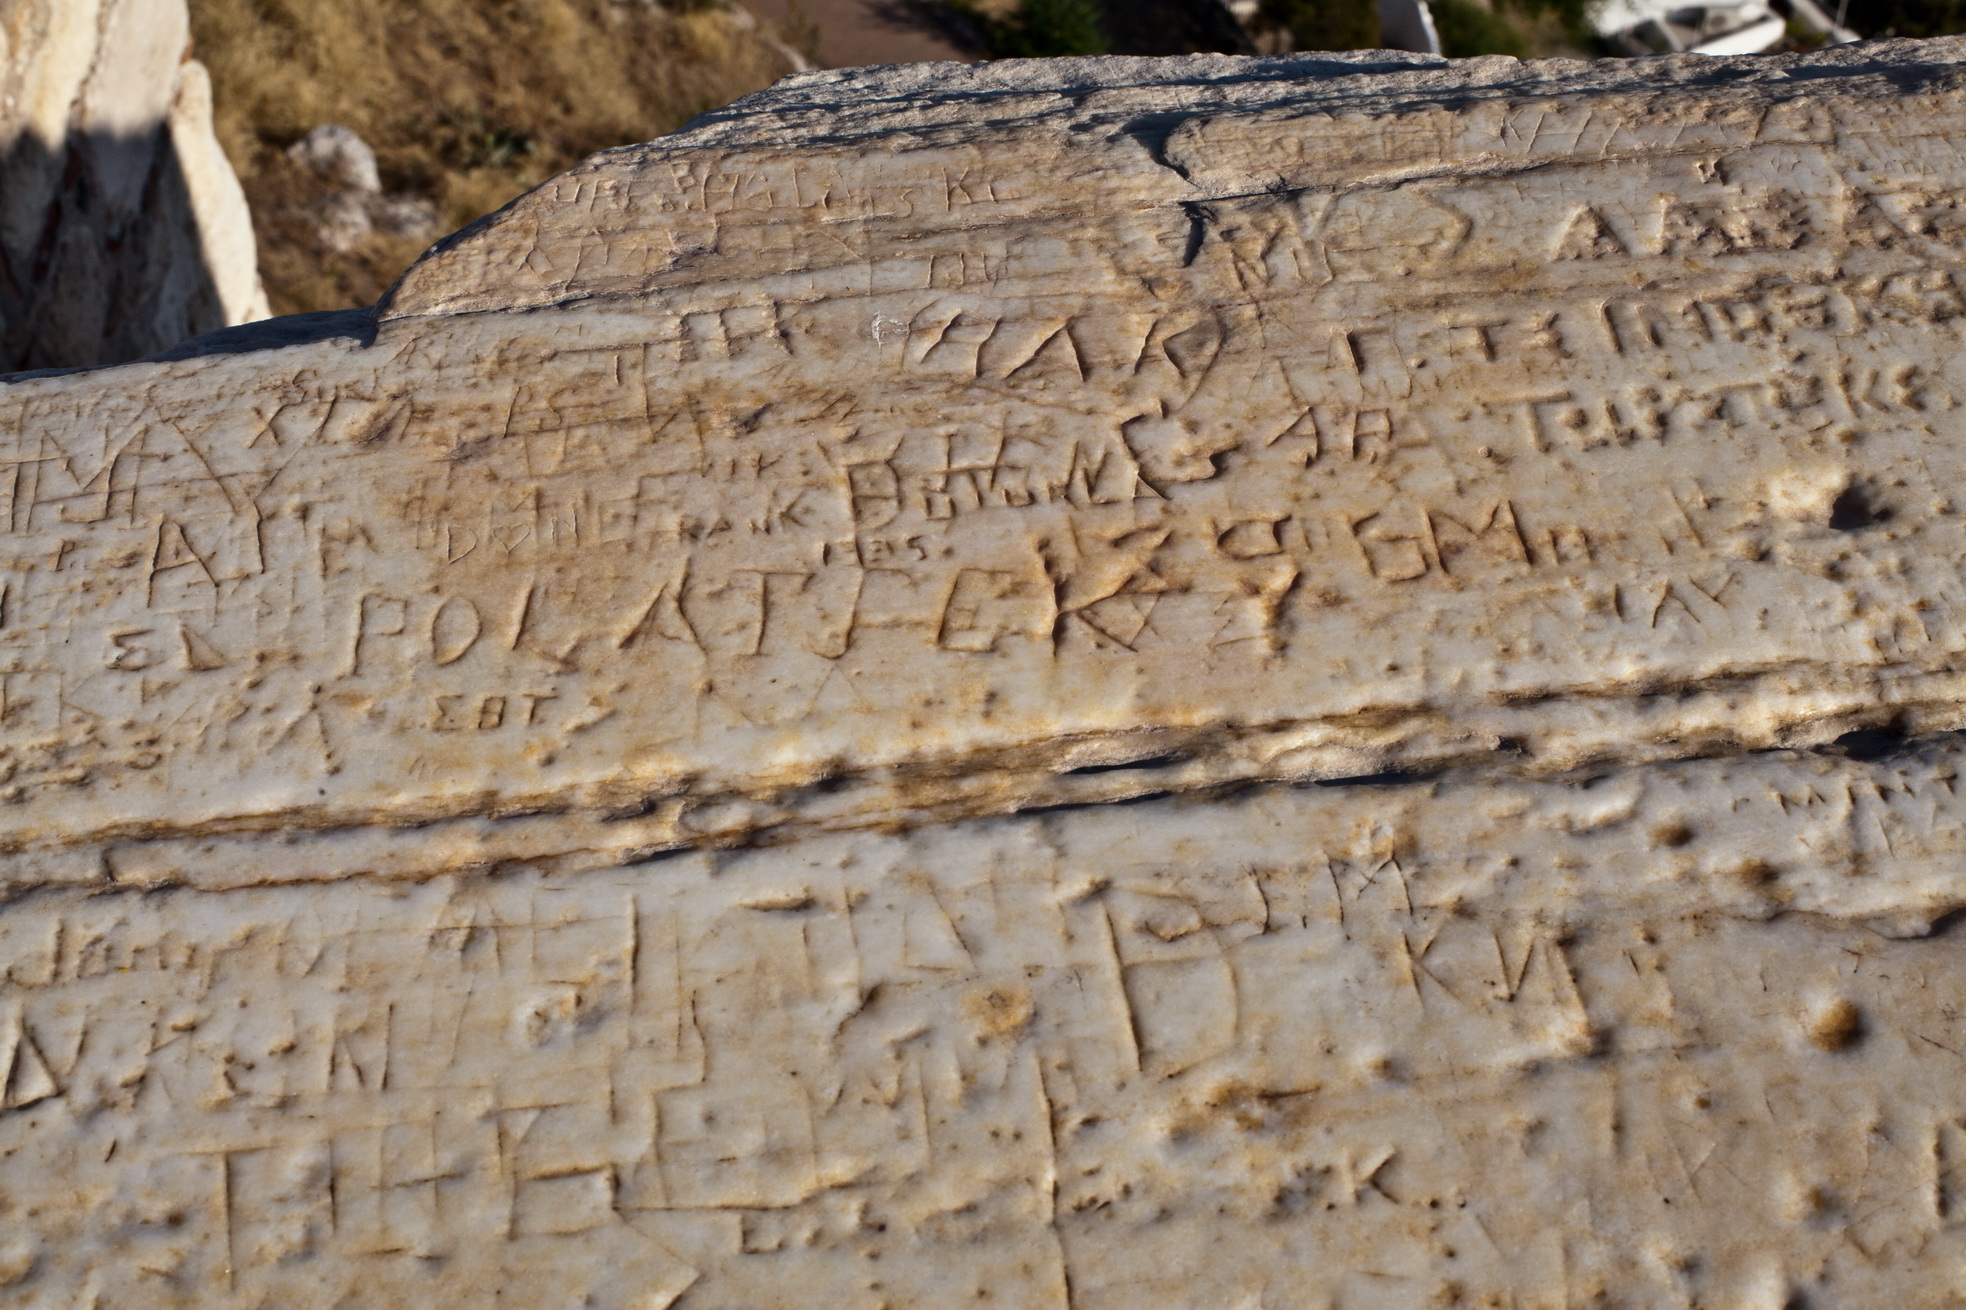 Image of ancient graffiti found at the acropolis